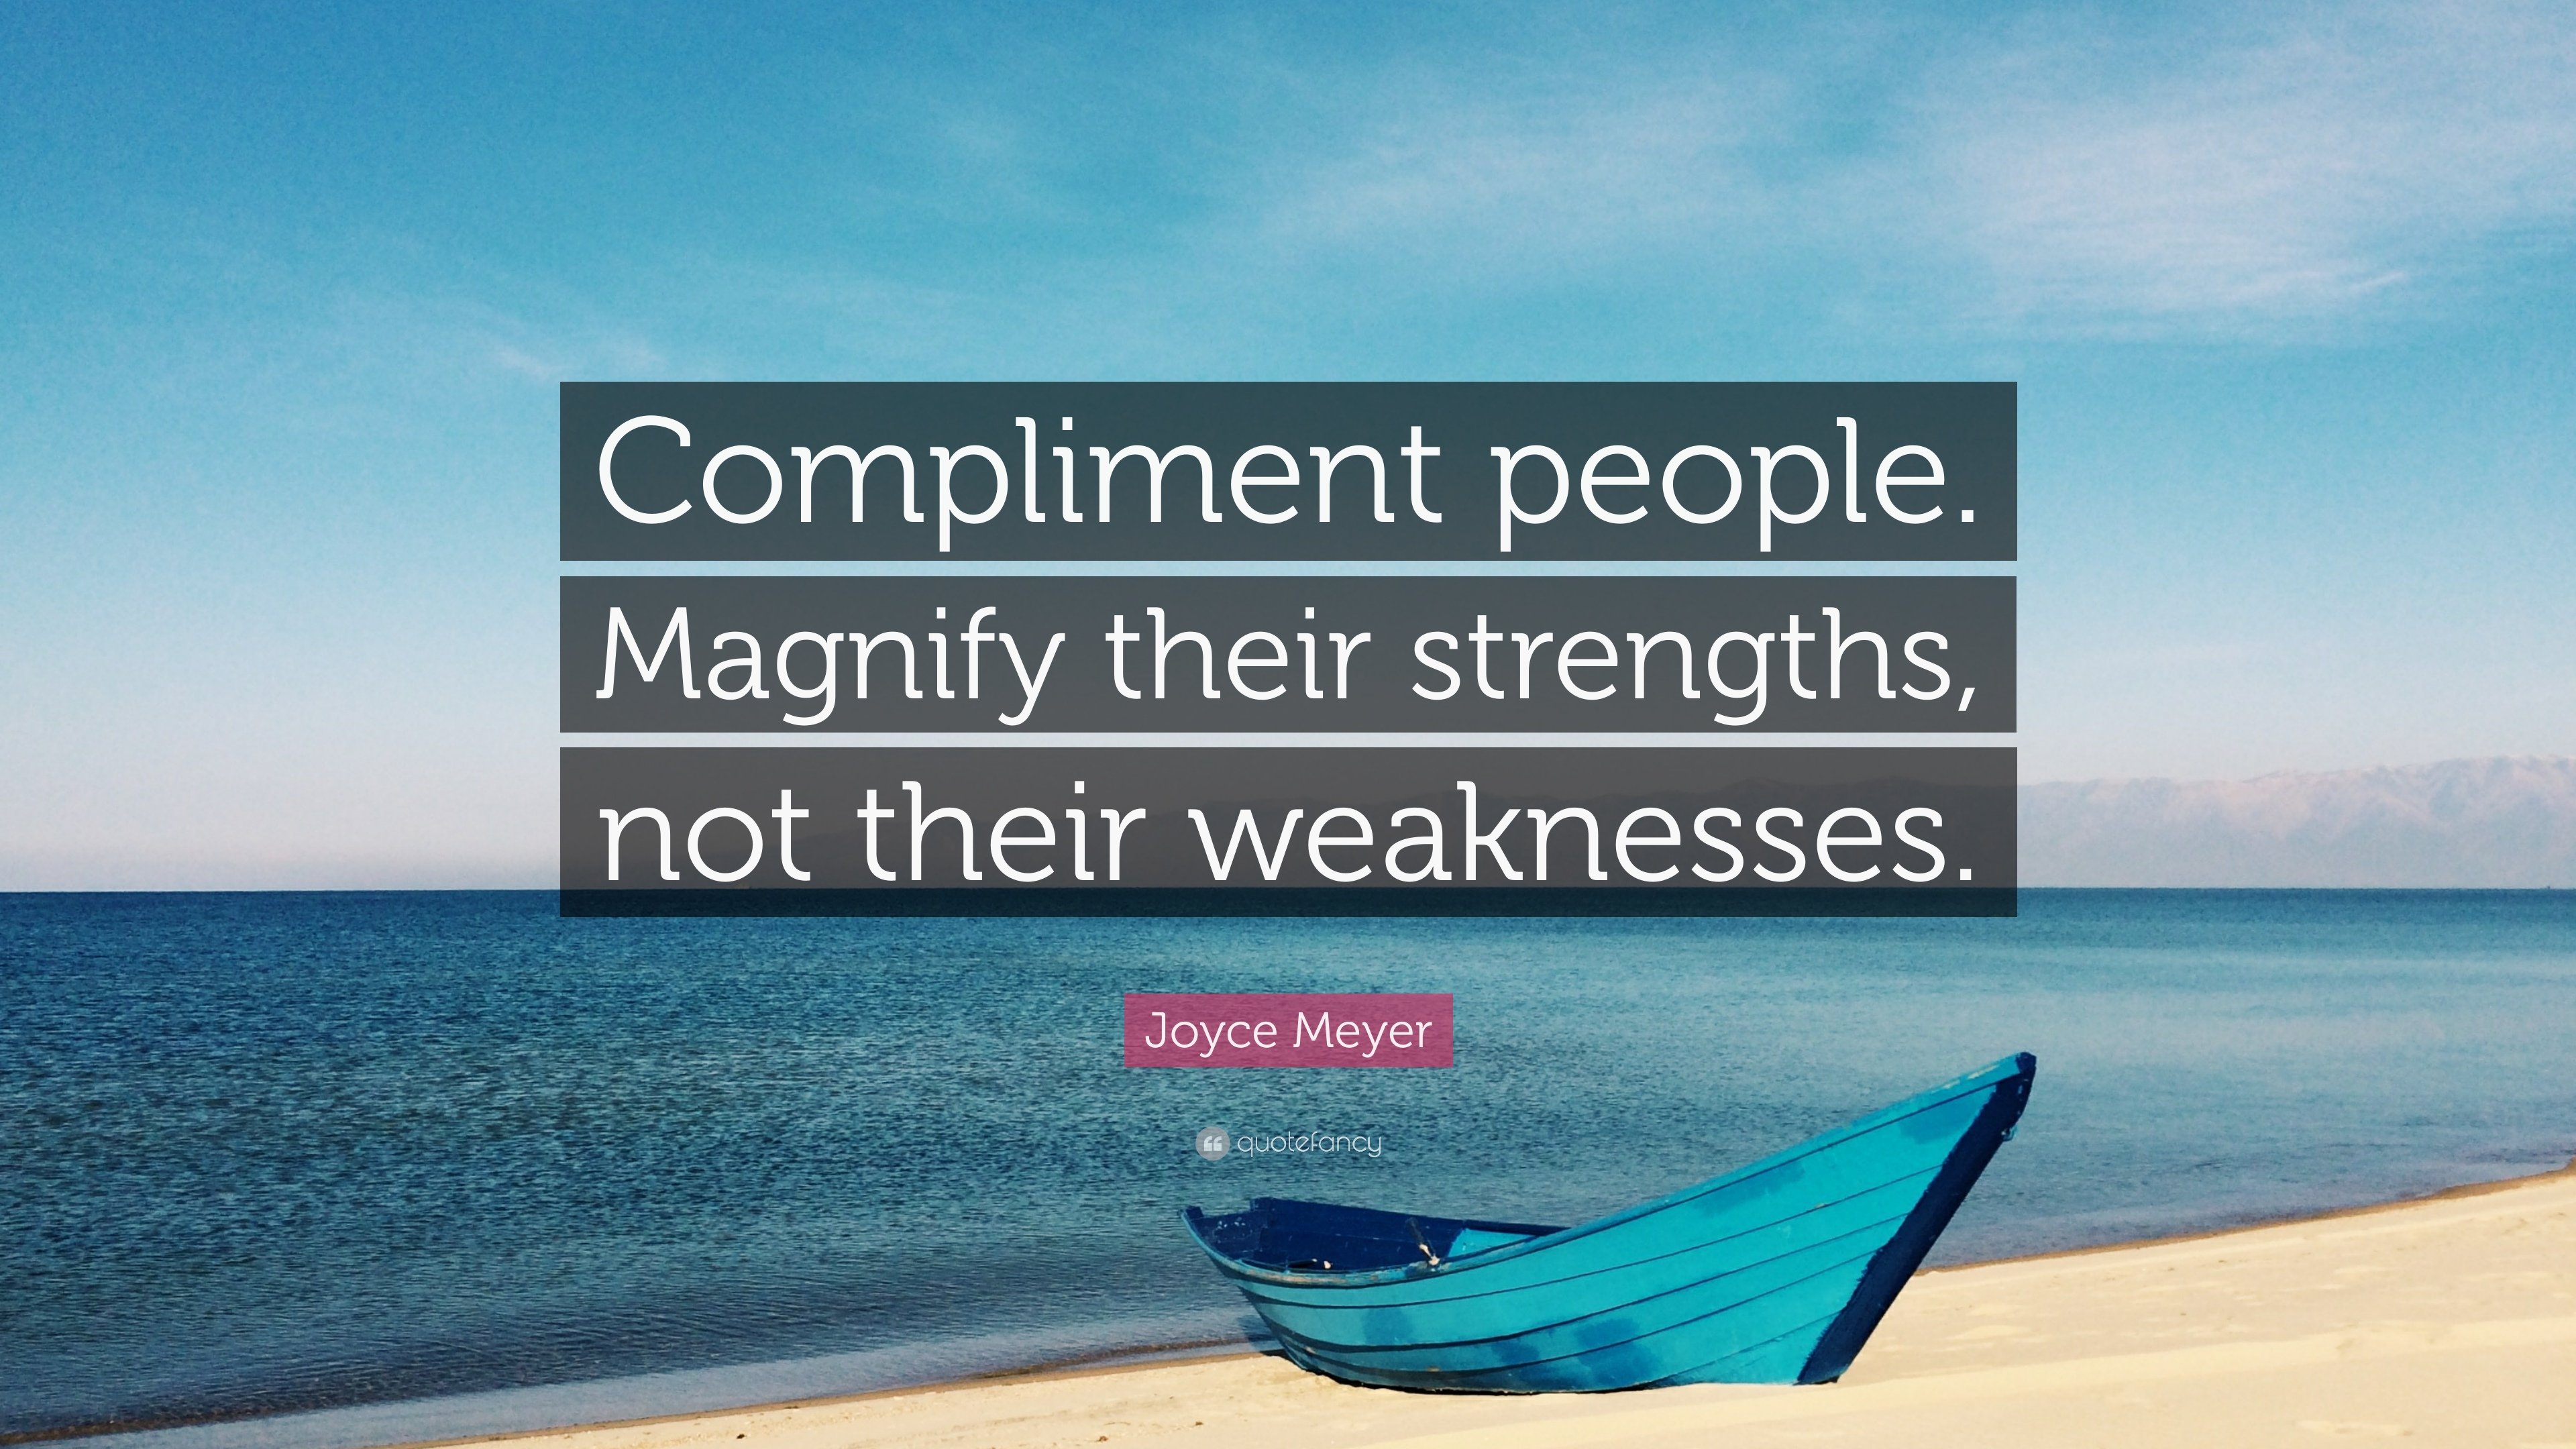 joyce meyer quote compliment people magnify their strengths joyce meyer quote compliment people magnify their strengths not their weaknesses